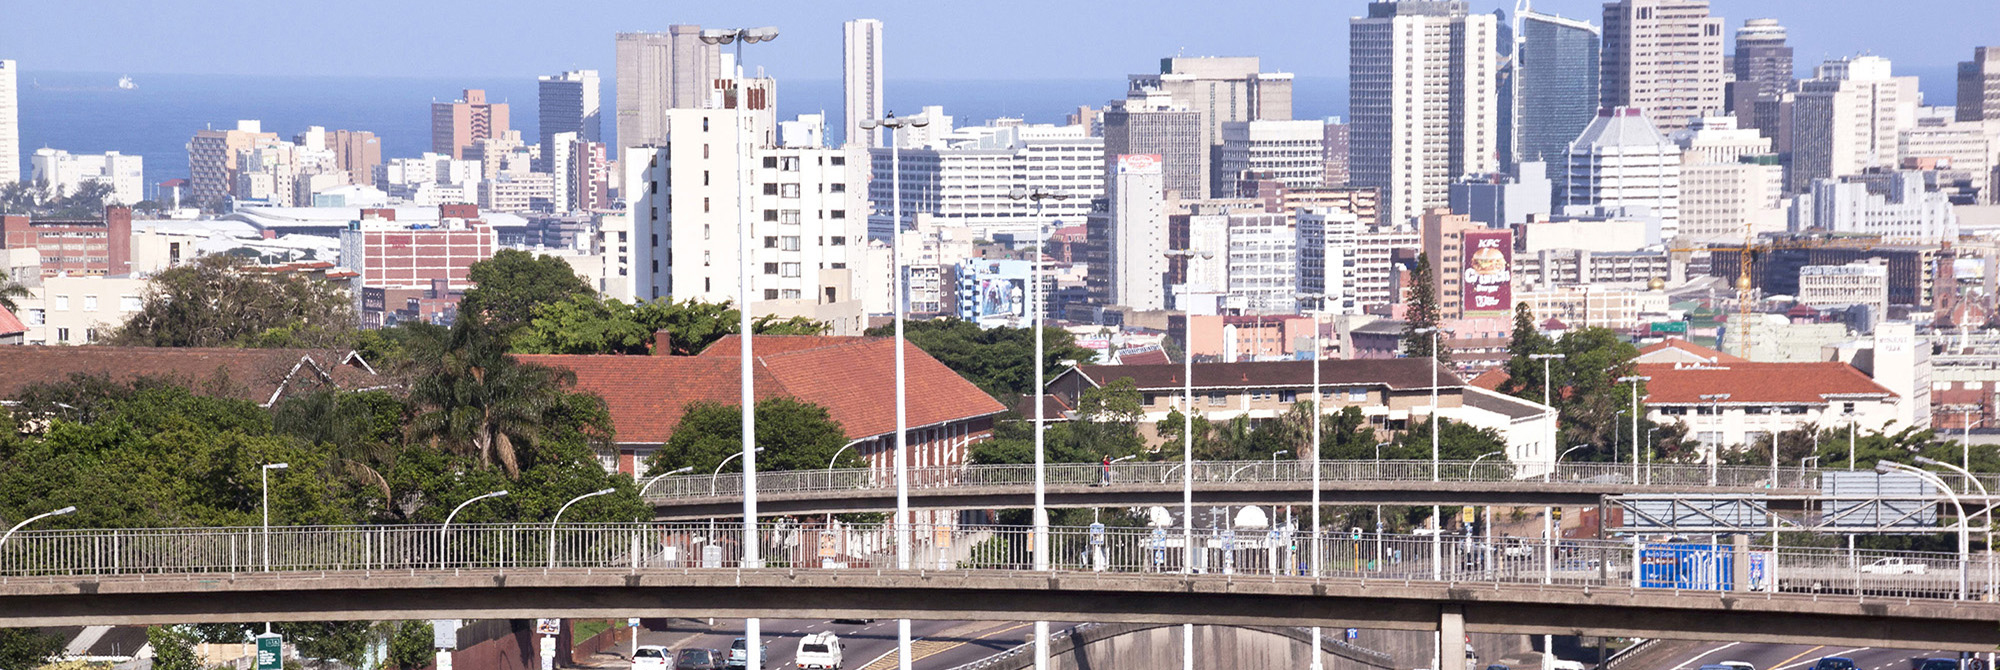 Protecting the City of Durban